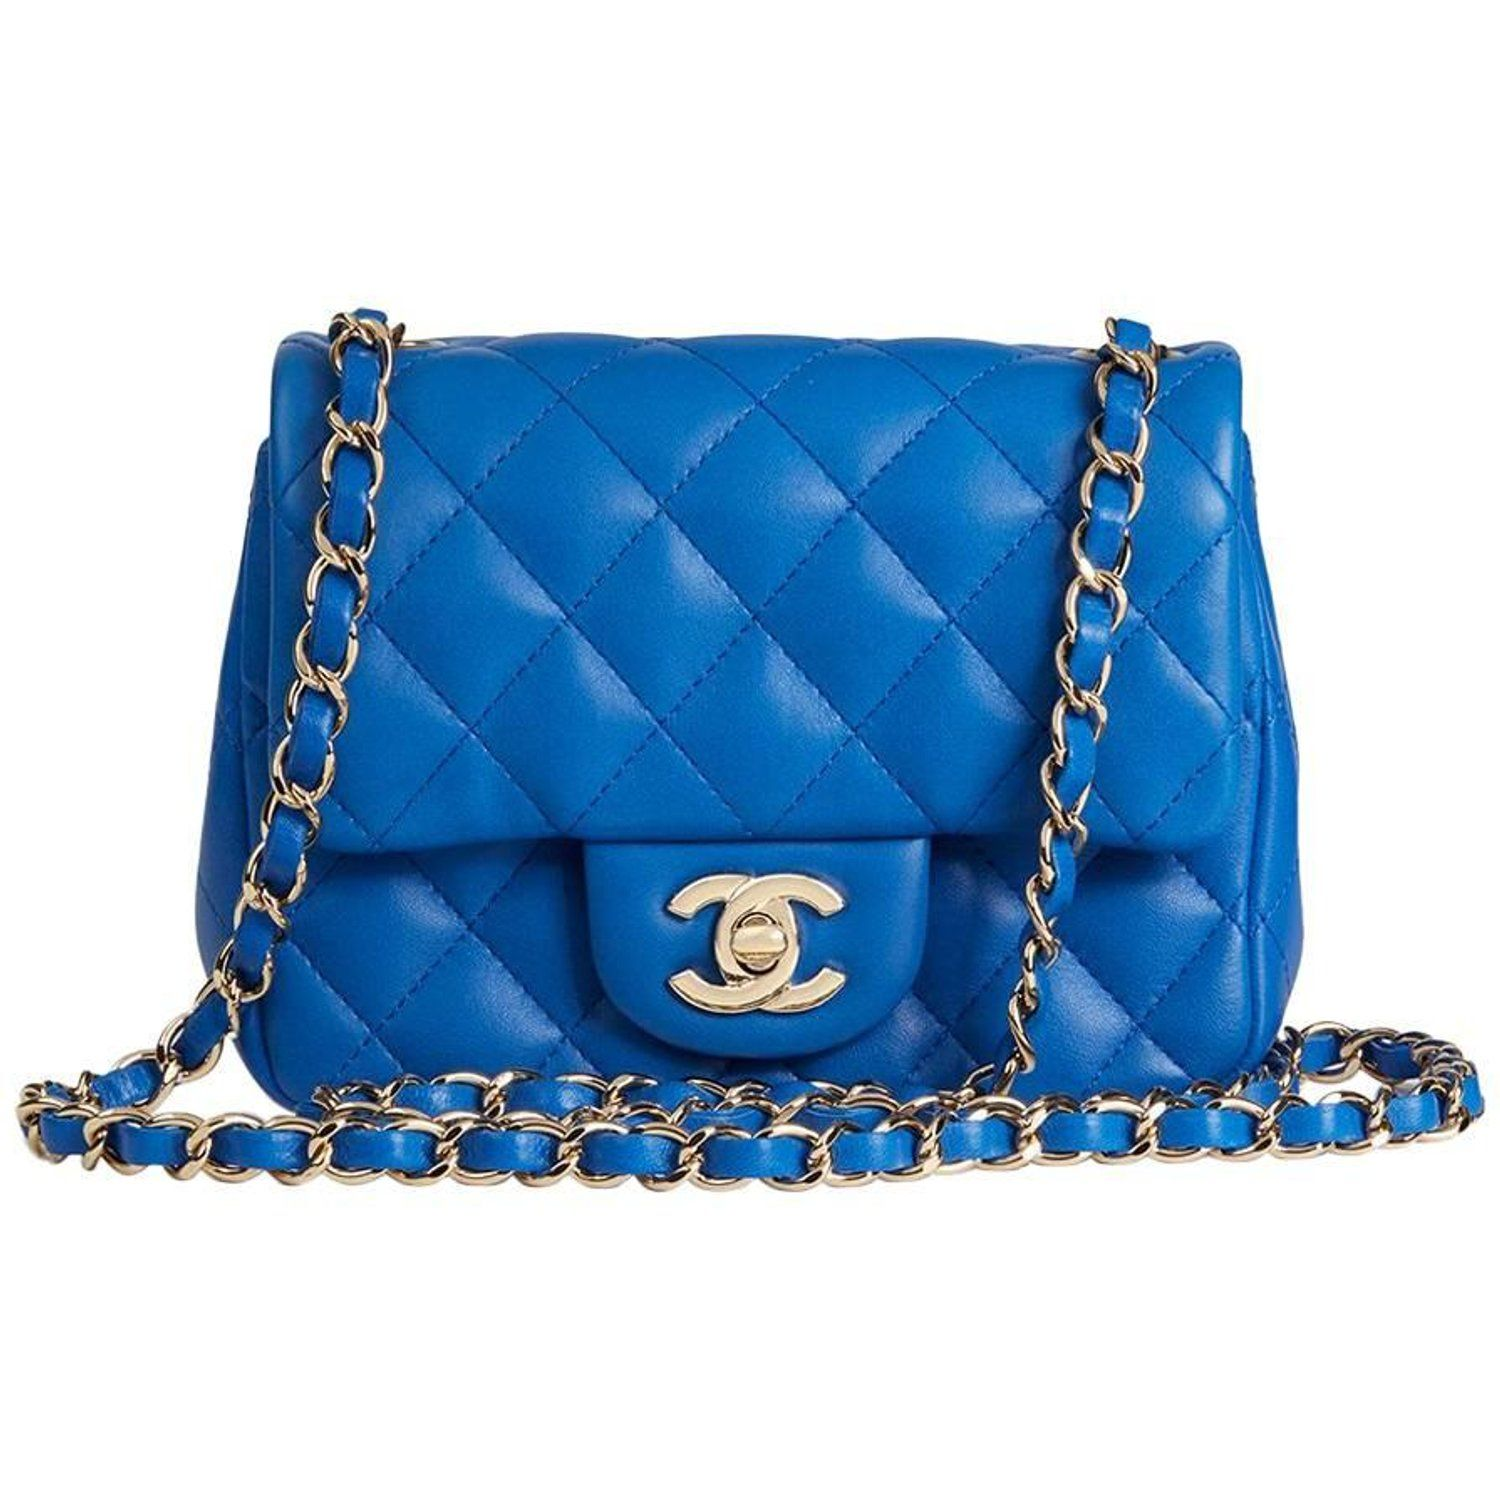 98cffae37bc1 Chanel Blue Quilted Lambskin Mini Flap Bag | Chanel | Bags, Chanel ...